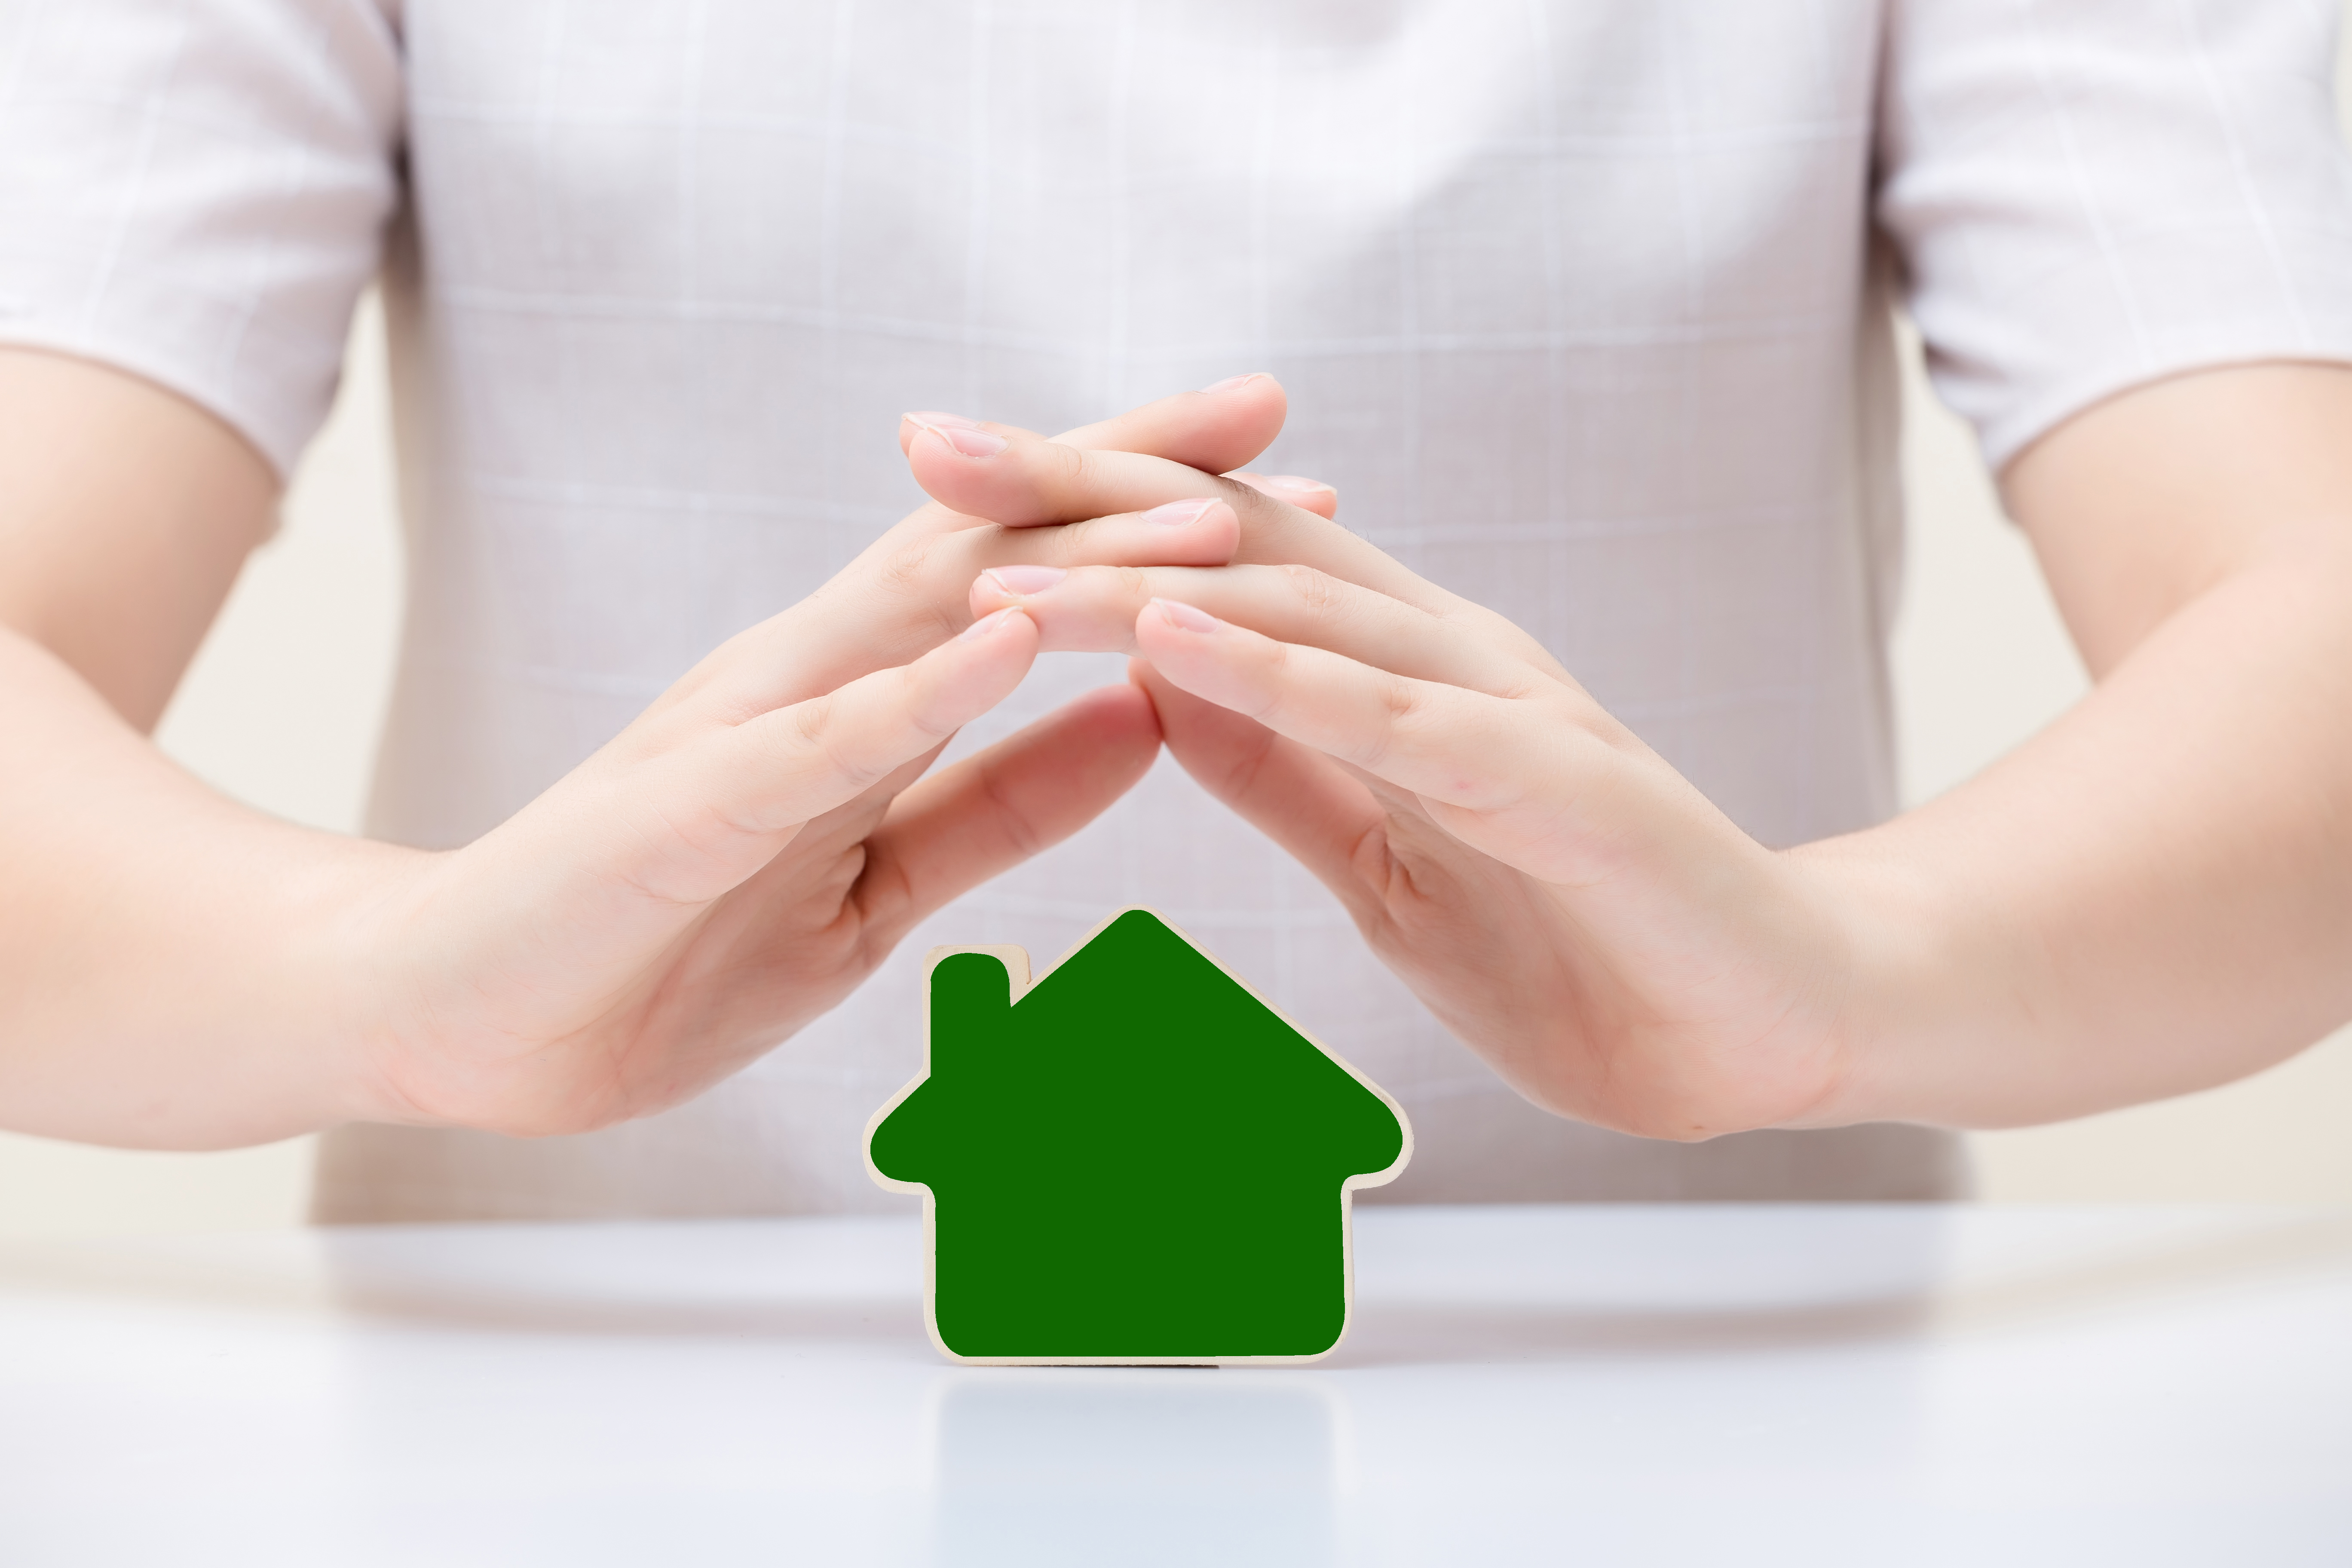 The frightening concerns for landlords